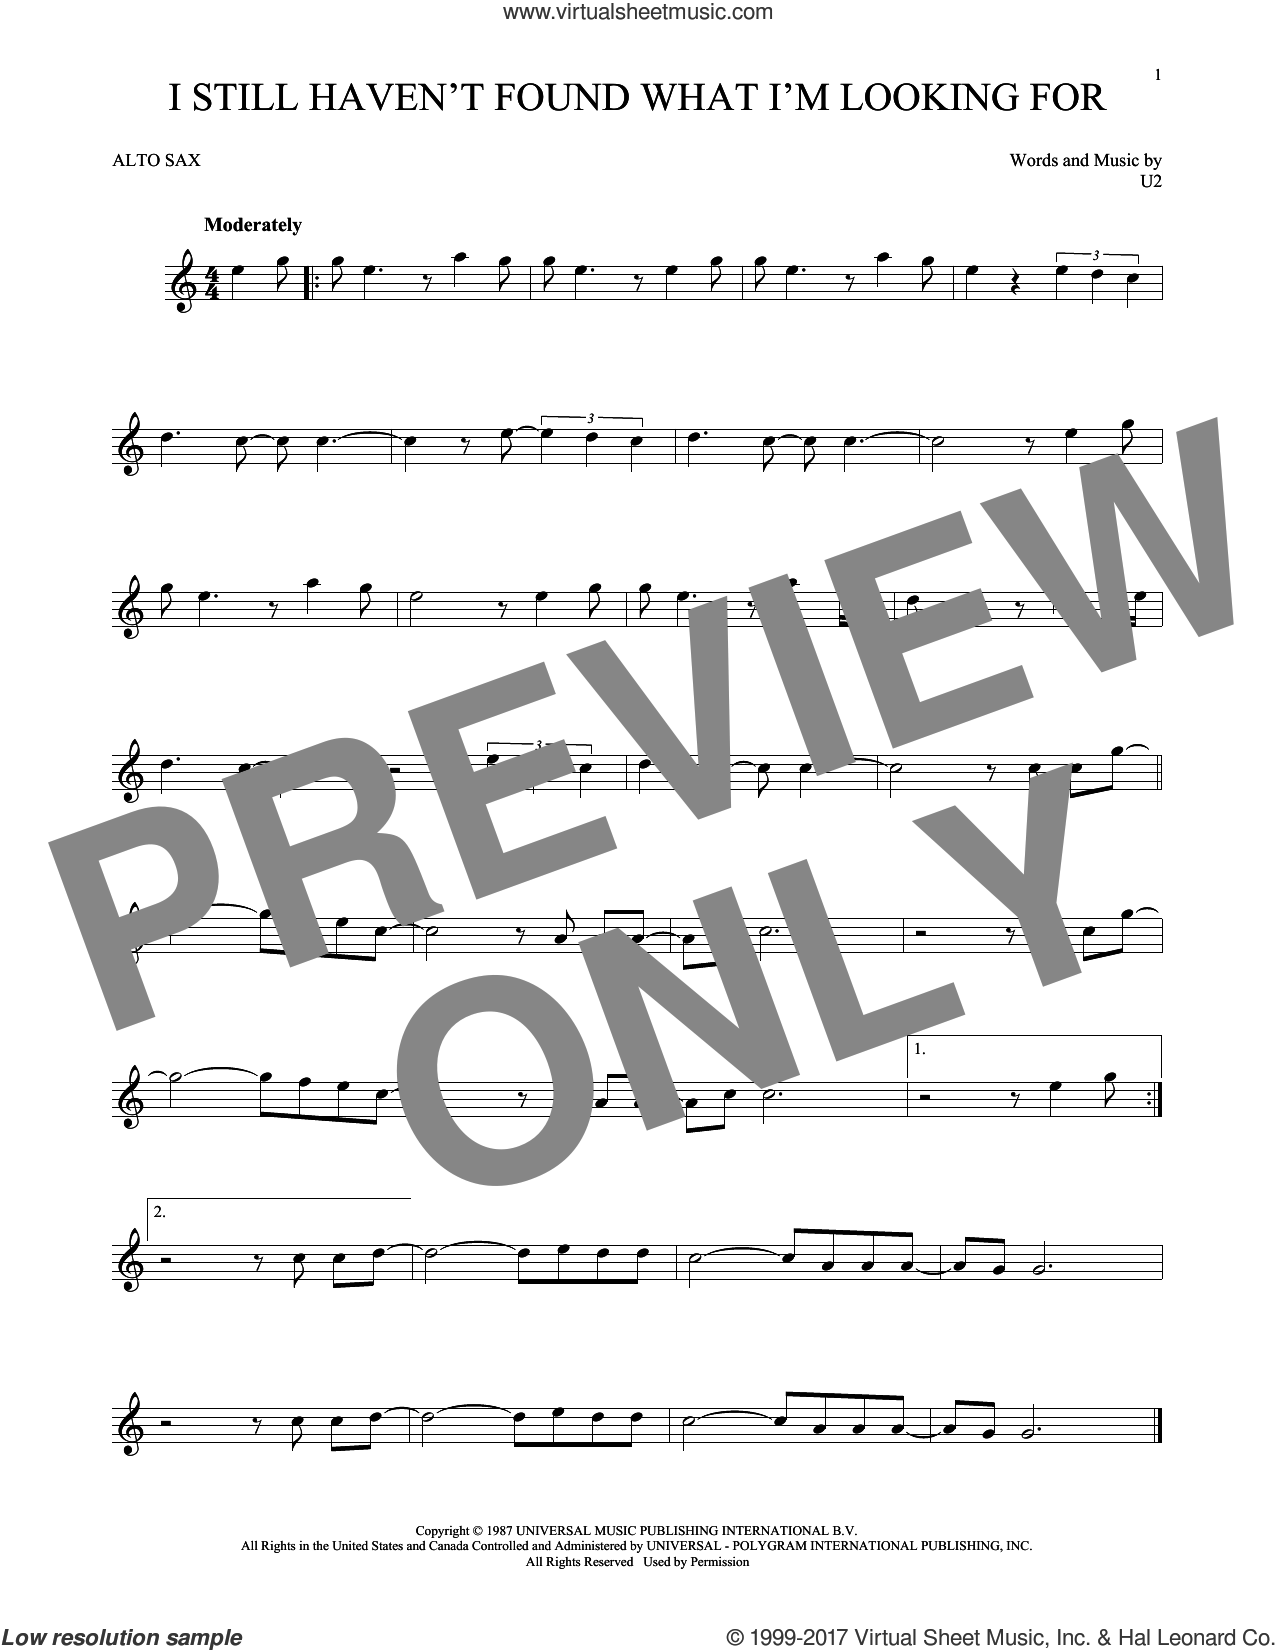 I Still Haven't Found What I'm Looking For sheet music for alto saxophone solo ( Sax) by U2, intermediate alto saxophone ( Sax). Score Image Preview.